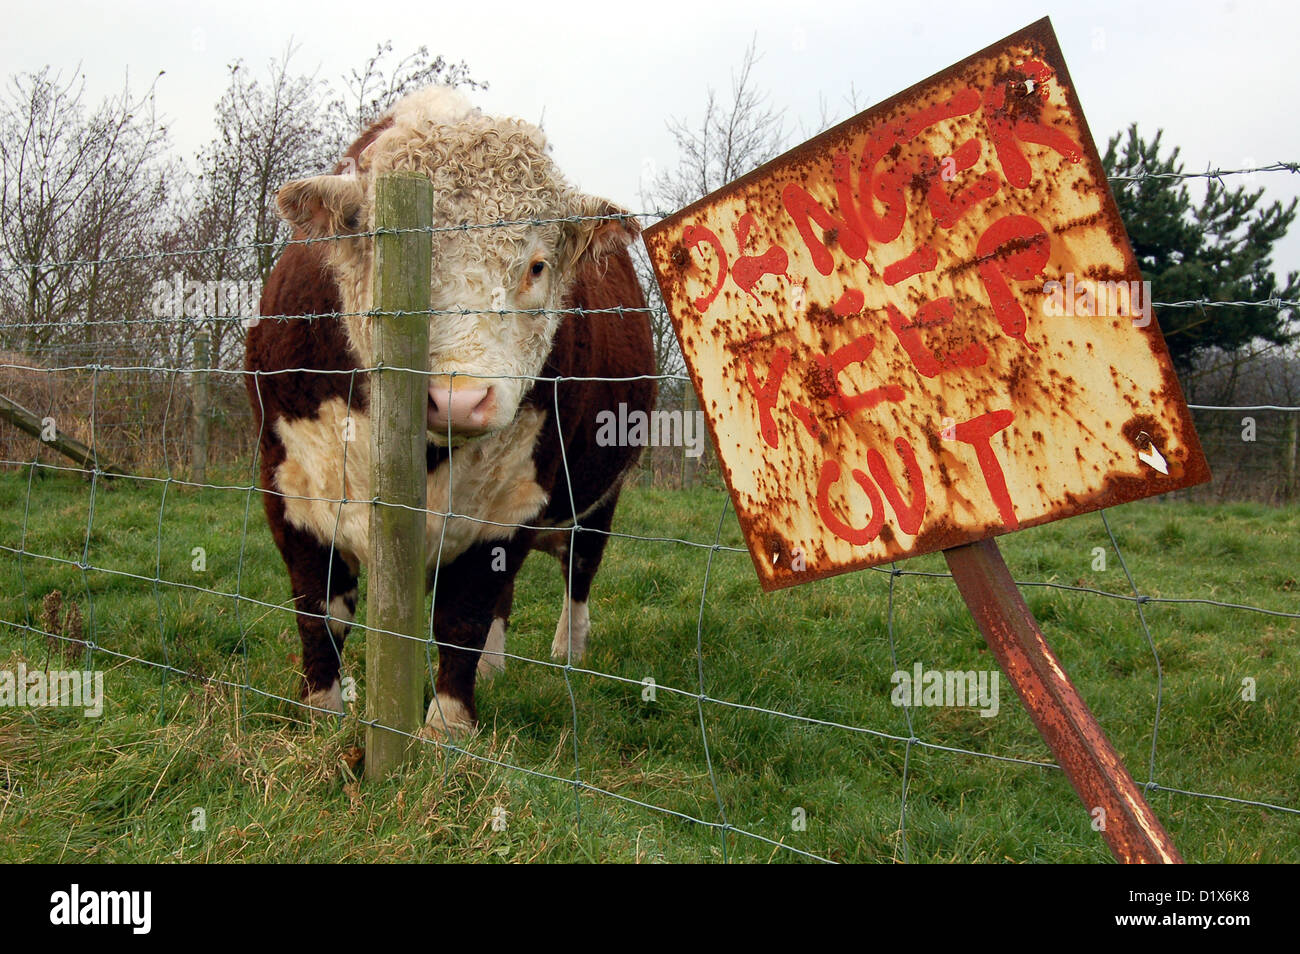 large bull on south staffordshire farmland seems to be attempting to hide behind a wooden fence stake. - Stock Image